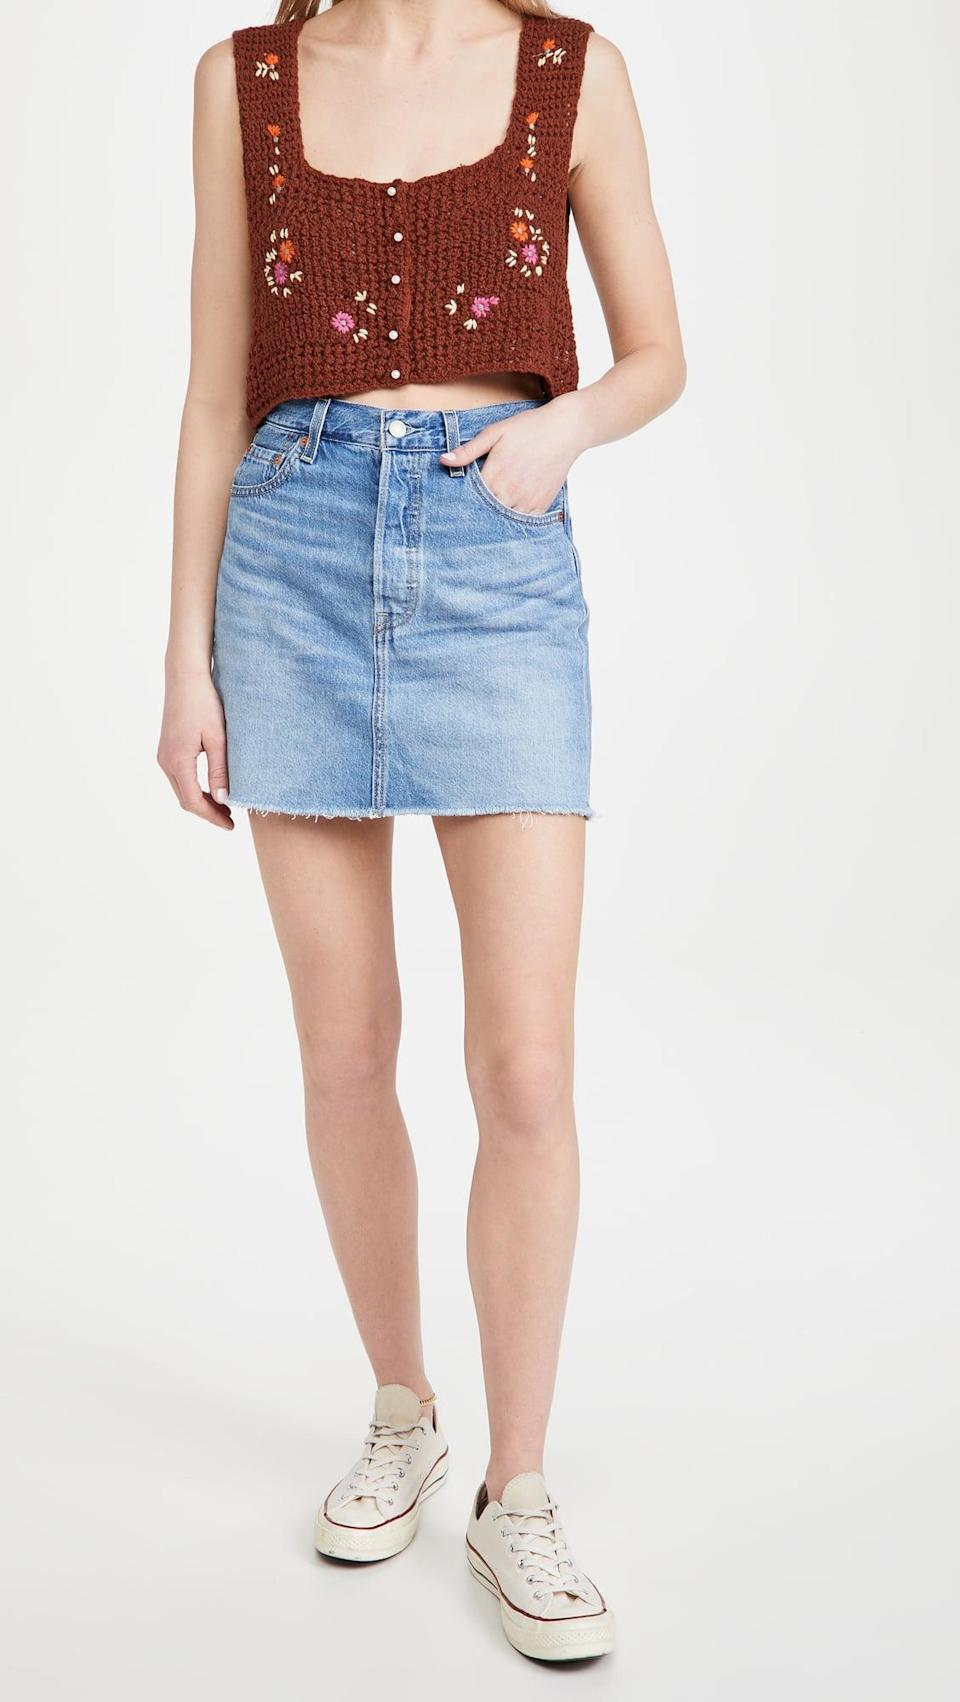 <p>This nostalgic <span>Levi's Ribcage Skirt</span> ($80) is what we're dreaming of wearing this summer. We like it with a tank or bikini top.</p>